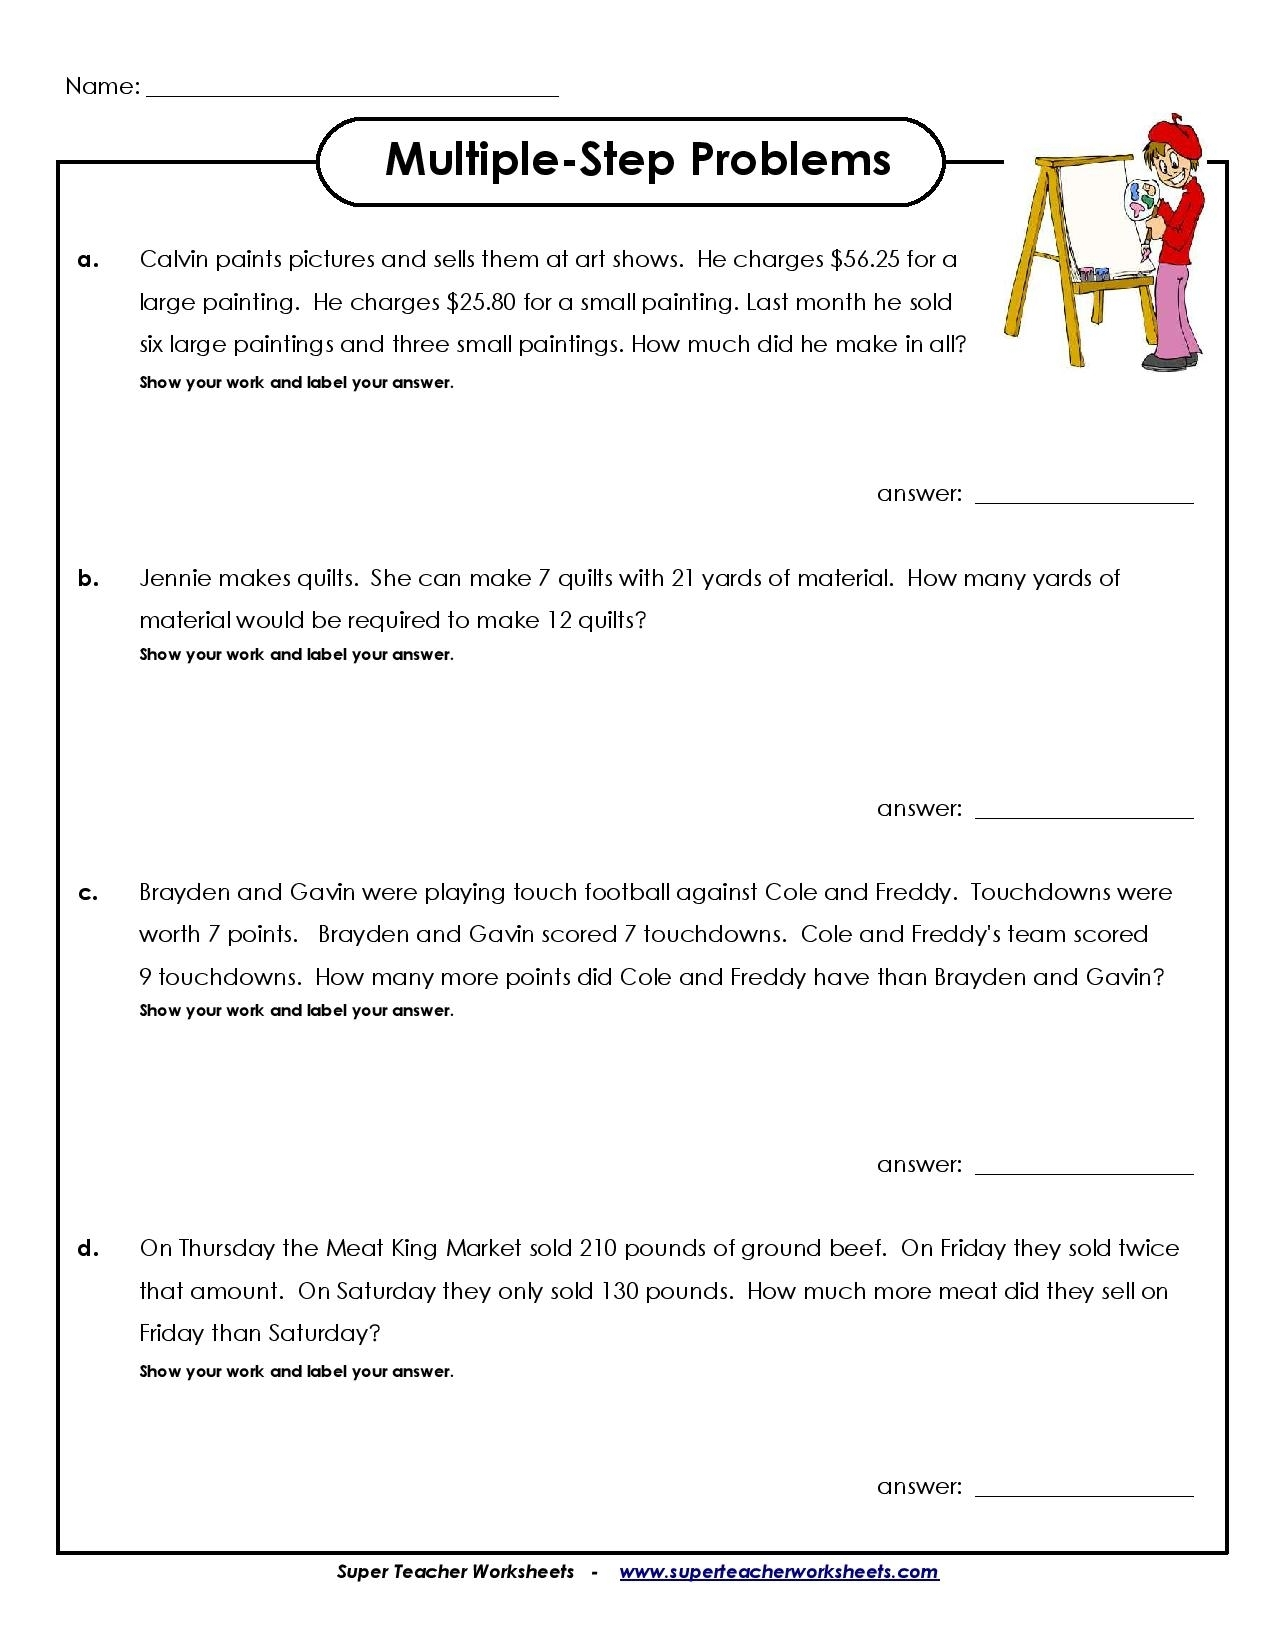 ✅Grade 4 Math Worksheets Archives - You Calendars